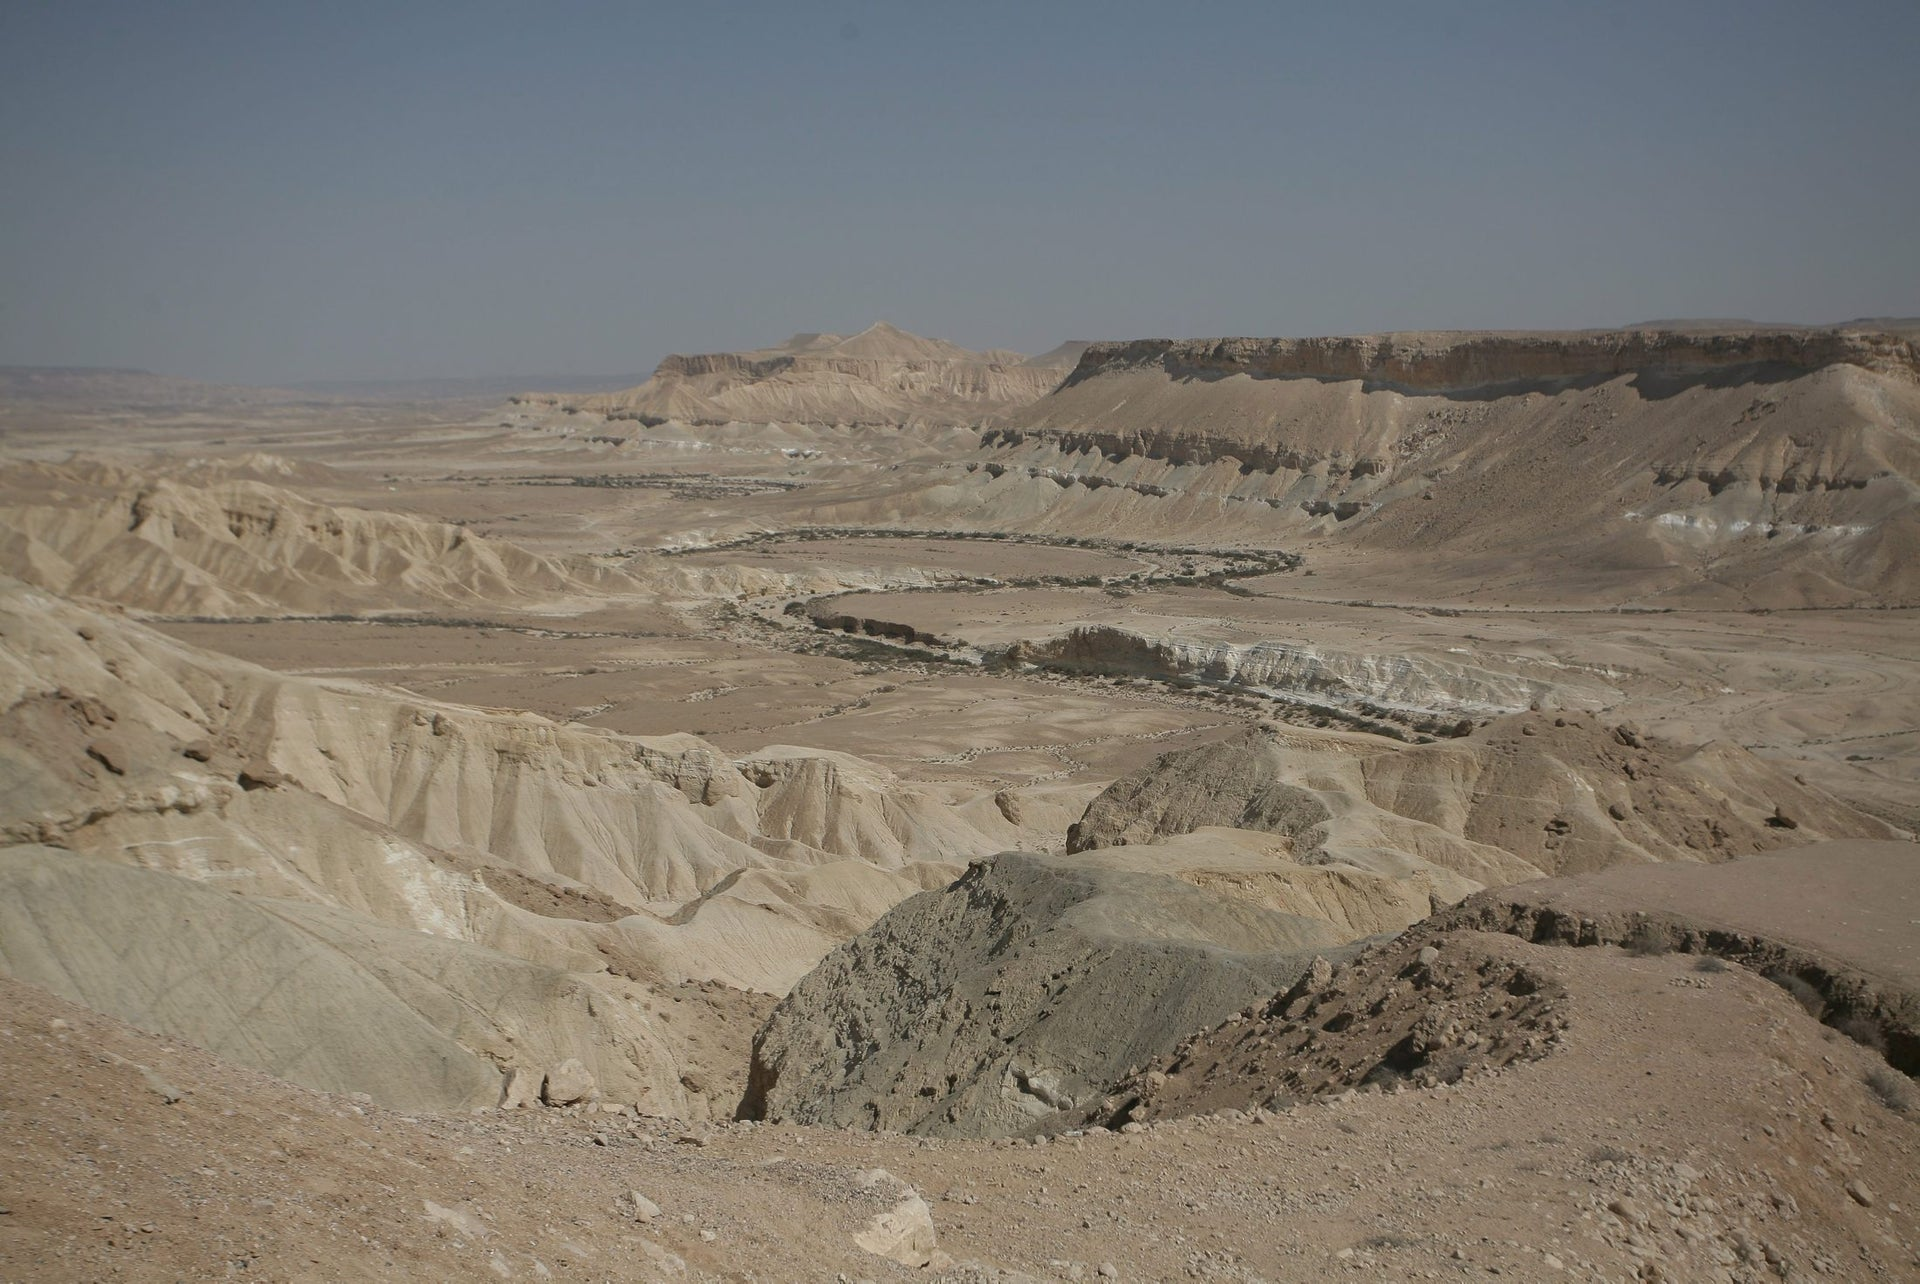 The Negev: Not a hospitable place for farmers, or jirds.